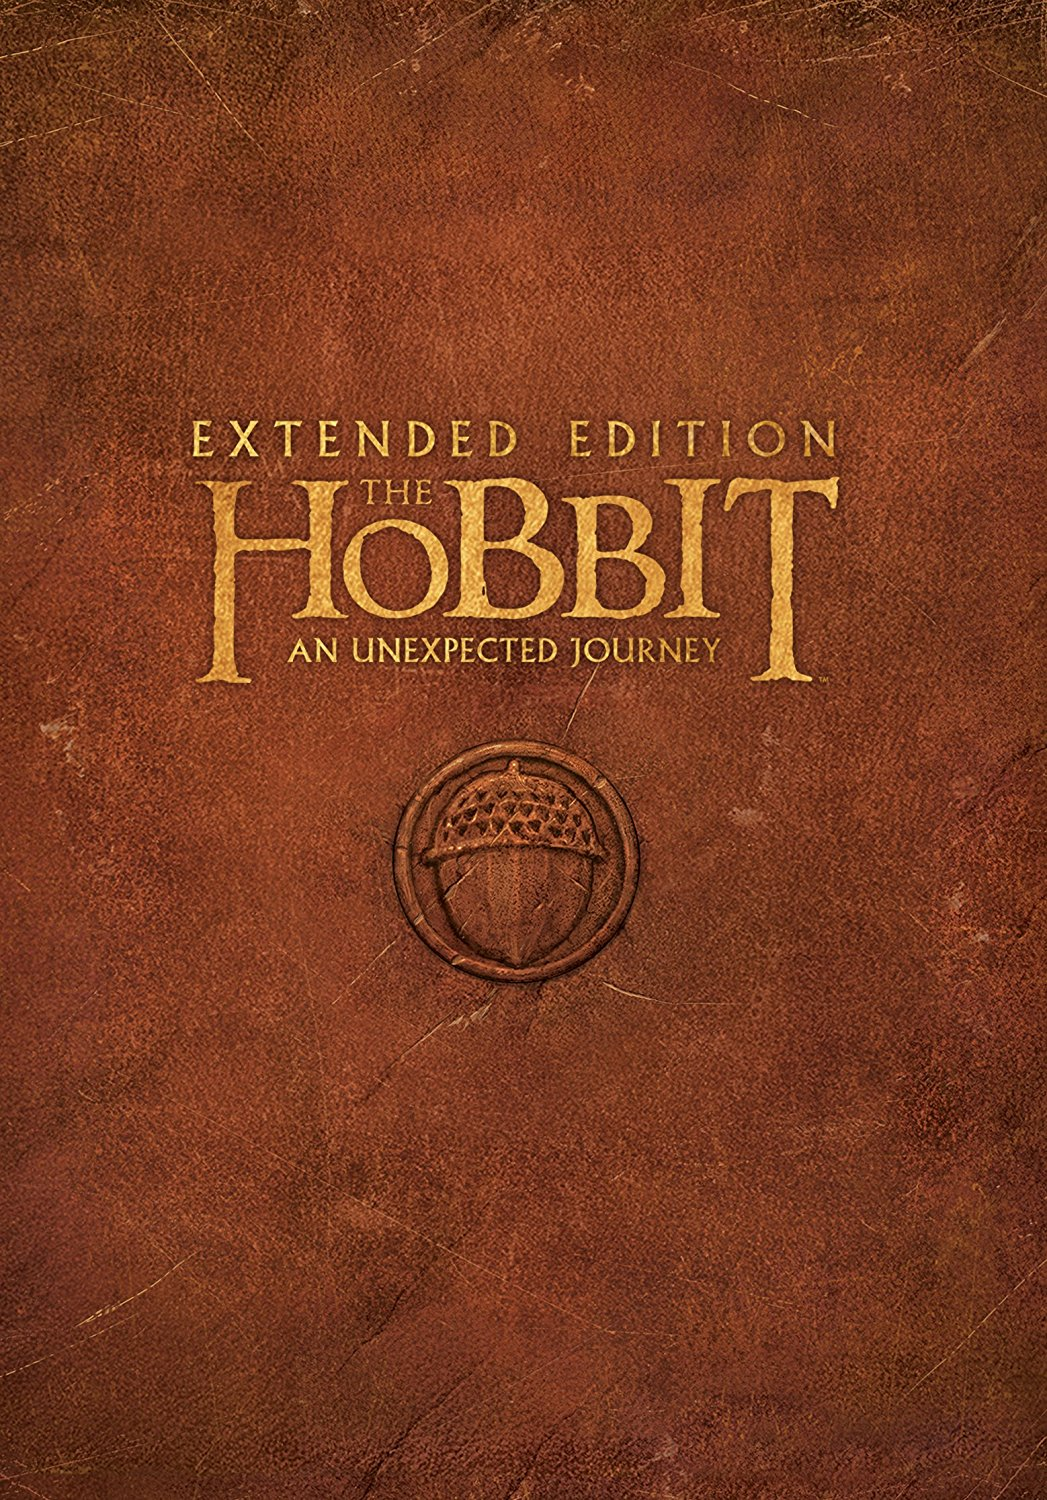 The Hobbit  An Unexpected Journey Extended Edition  DVD The Hobbit An Unexpected Journey Dvd